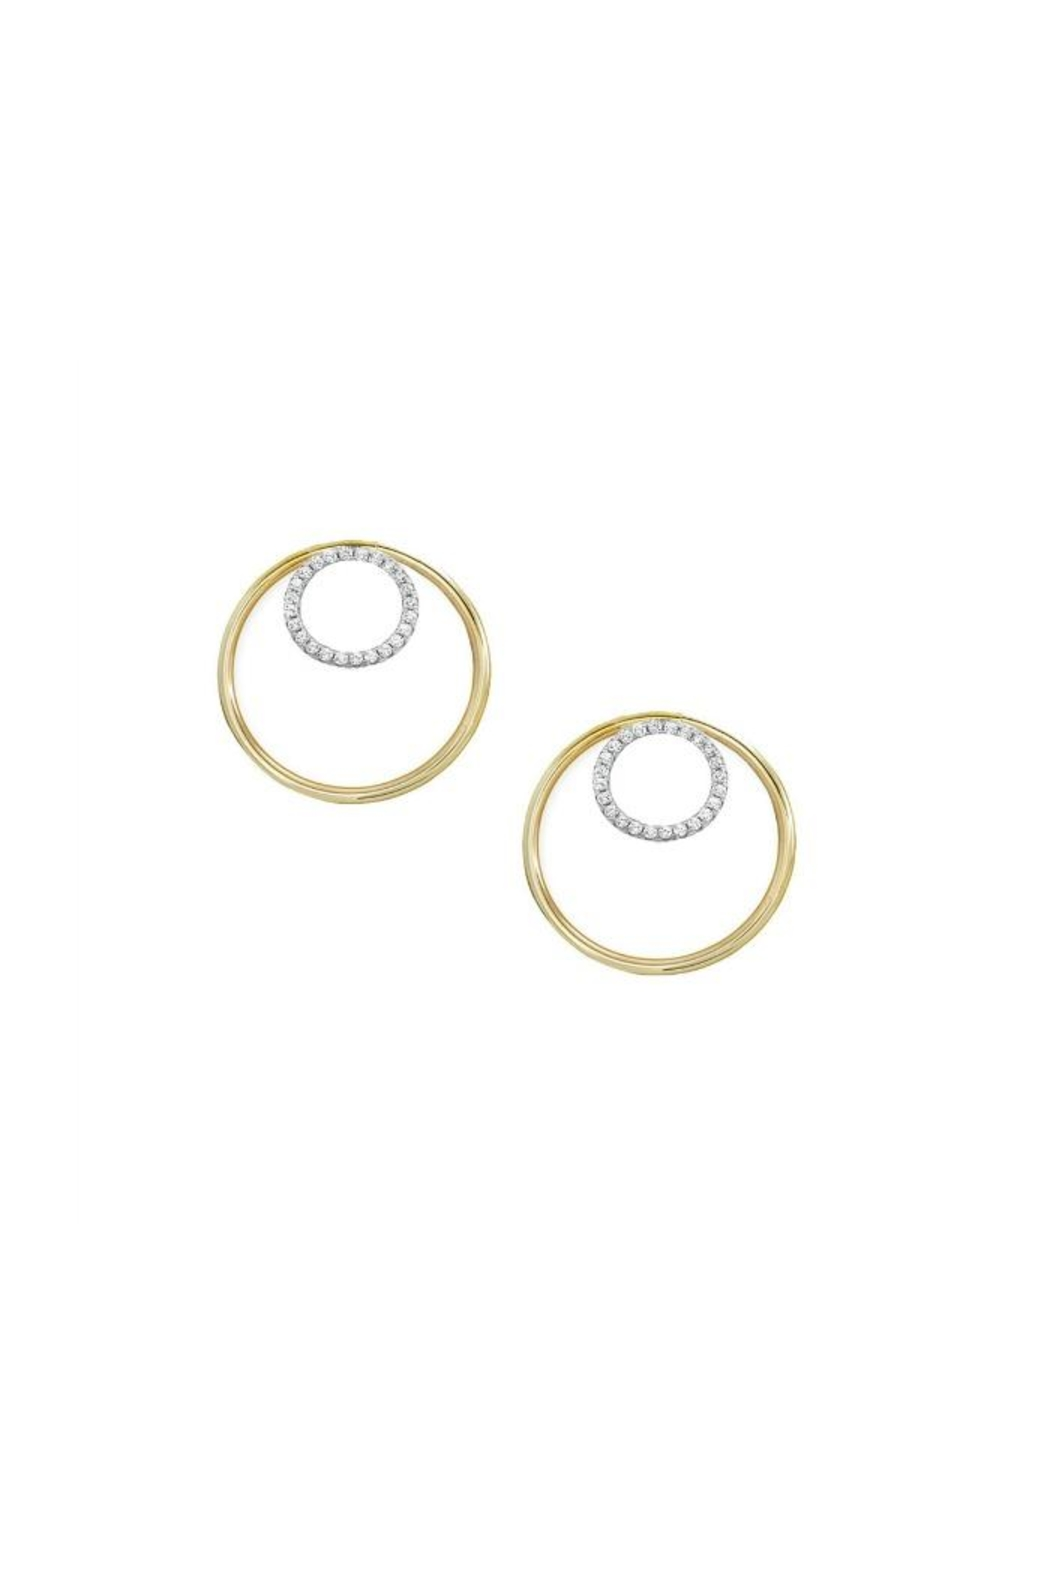 Jaimie Nicole Gold Hoop Earrings - Front Cropped Image